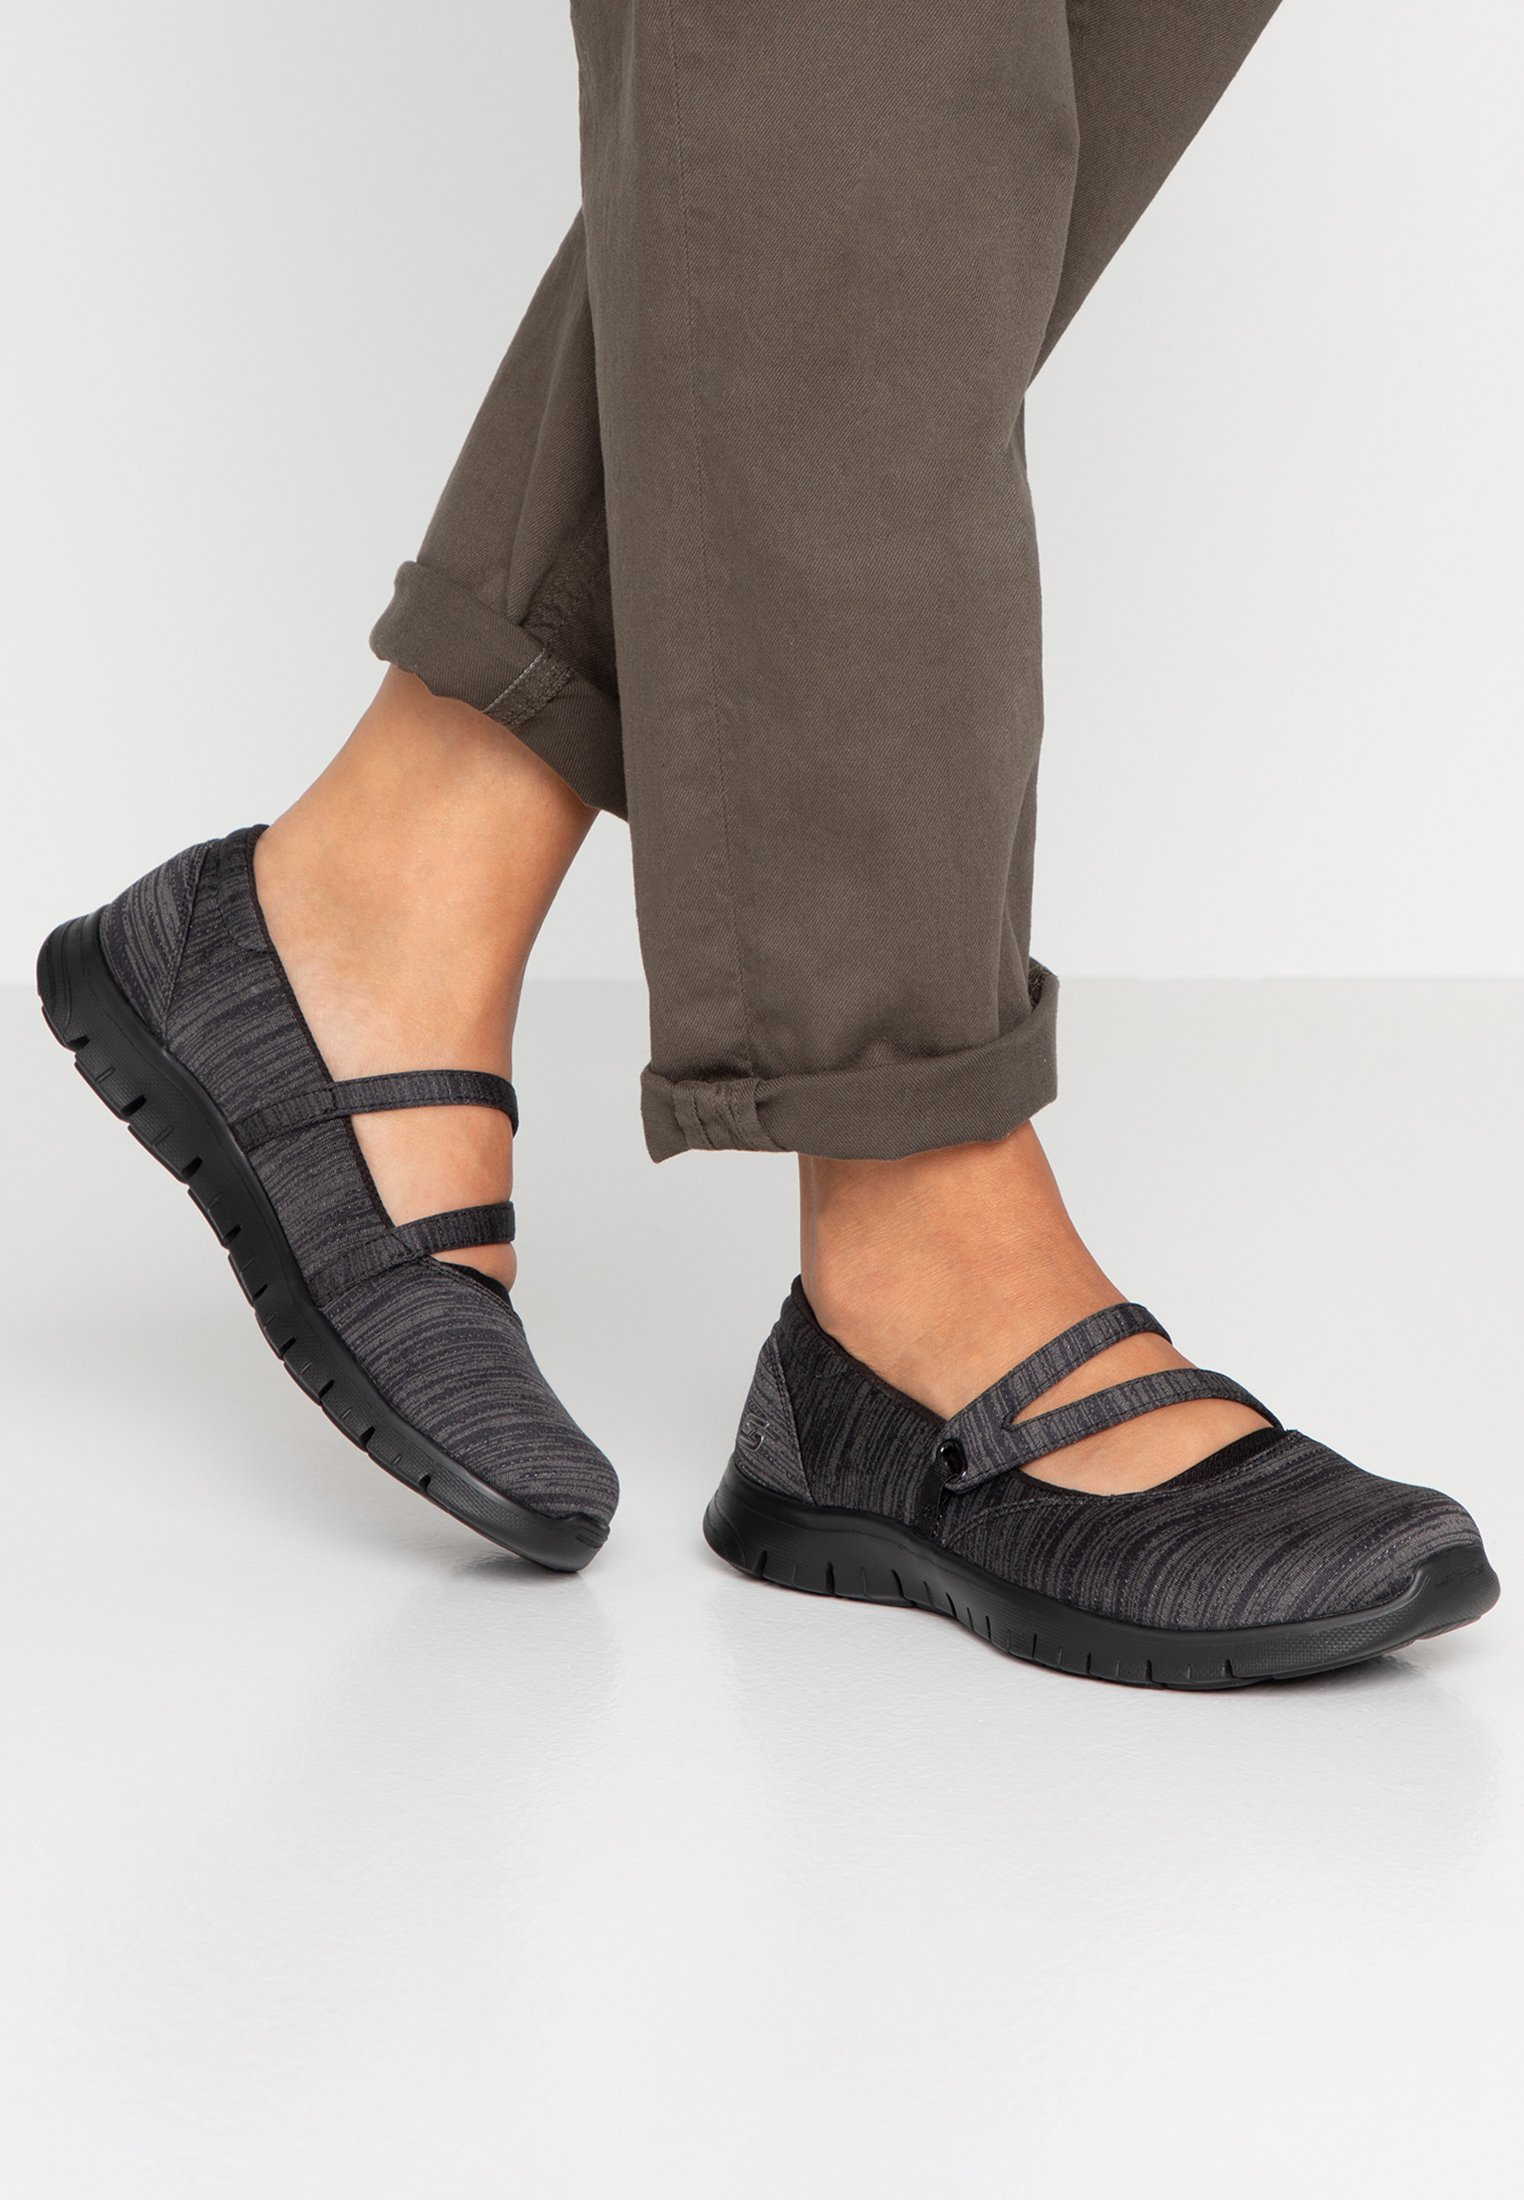 Skechers FLEX RENEW MAKE IT COUNT RELAXED FIT 2Wbkw